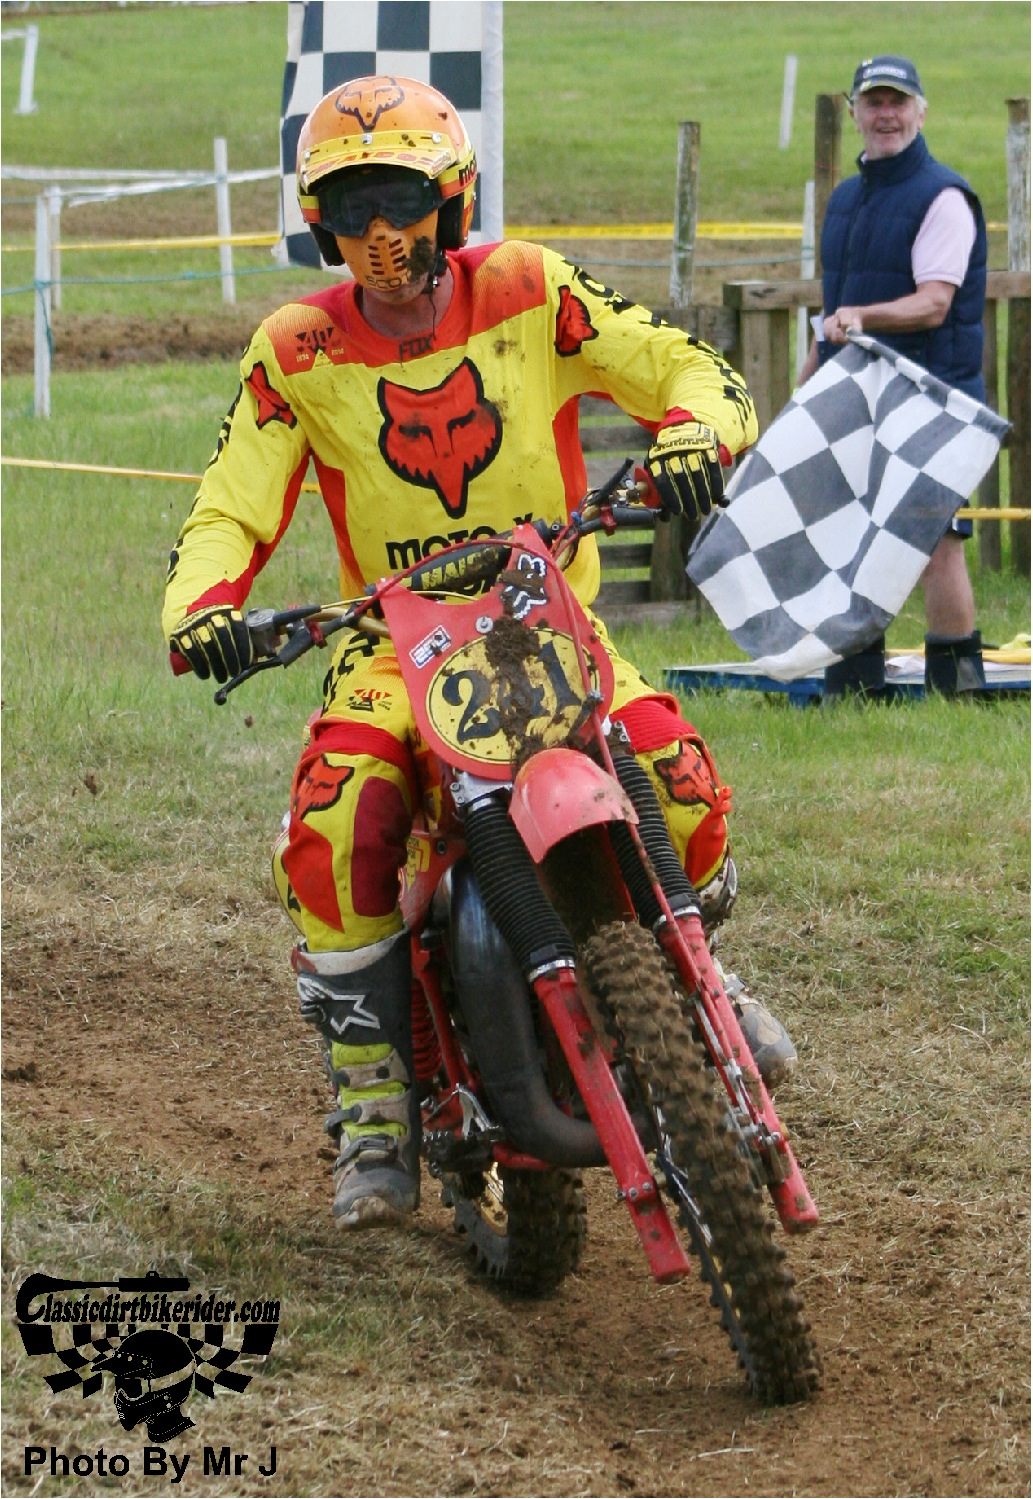 king of the castle 2015 photos Farleigh Castle twinshock motocross classicdirtbikerider.com 86